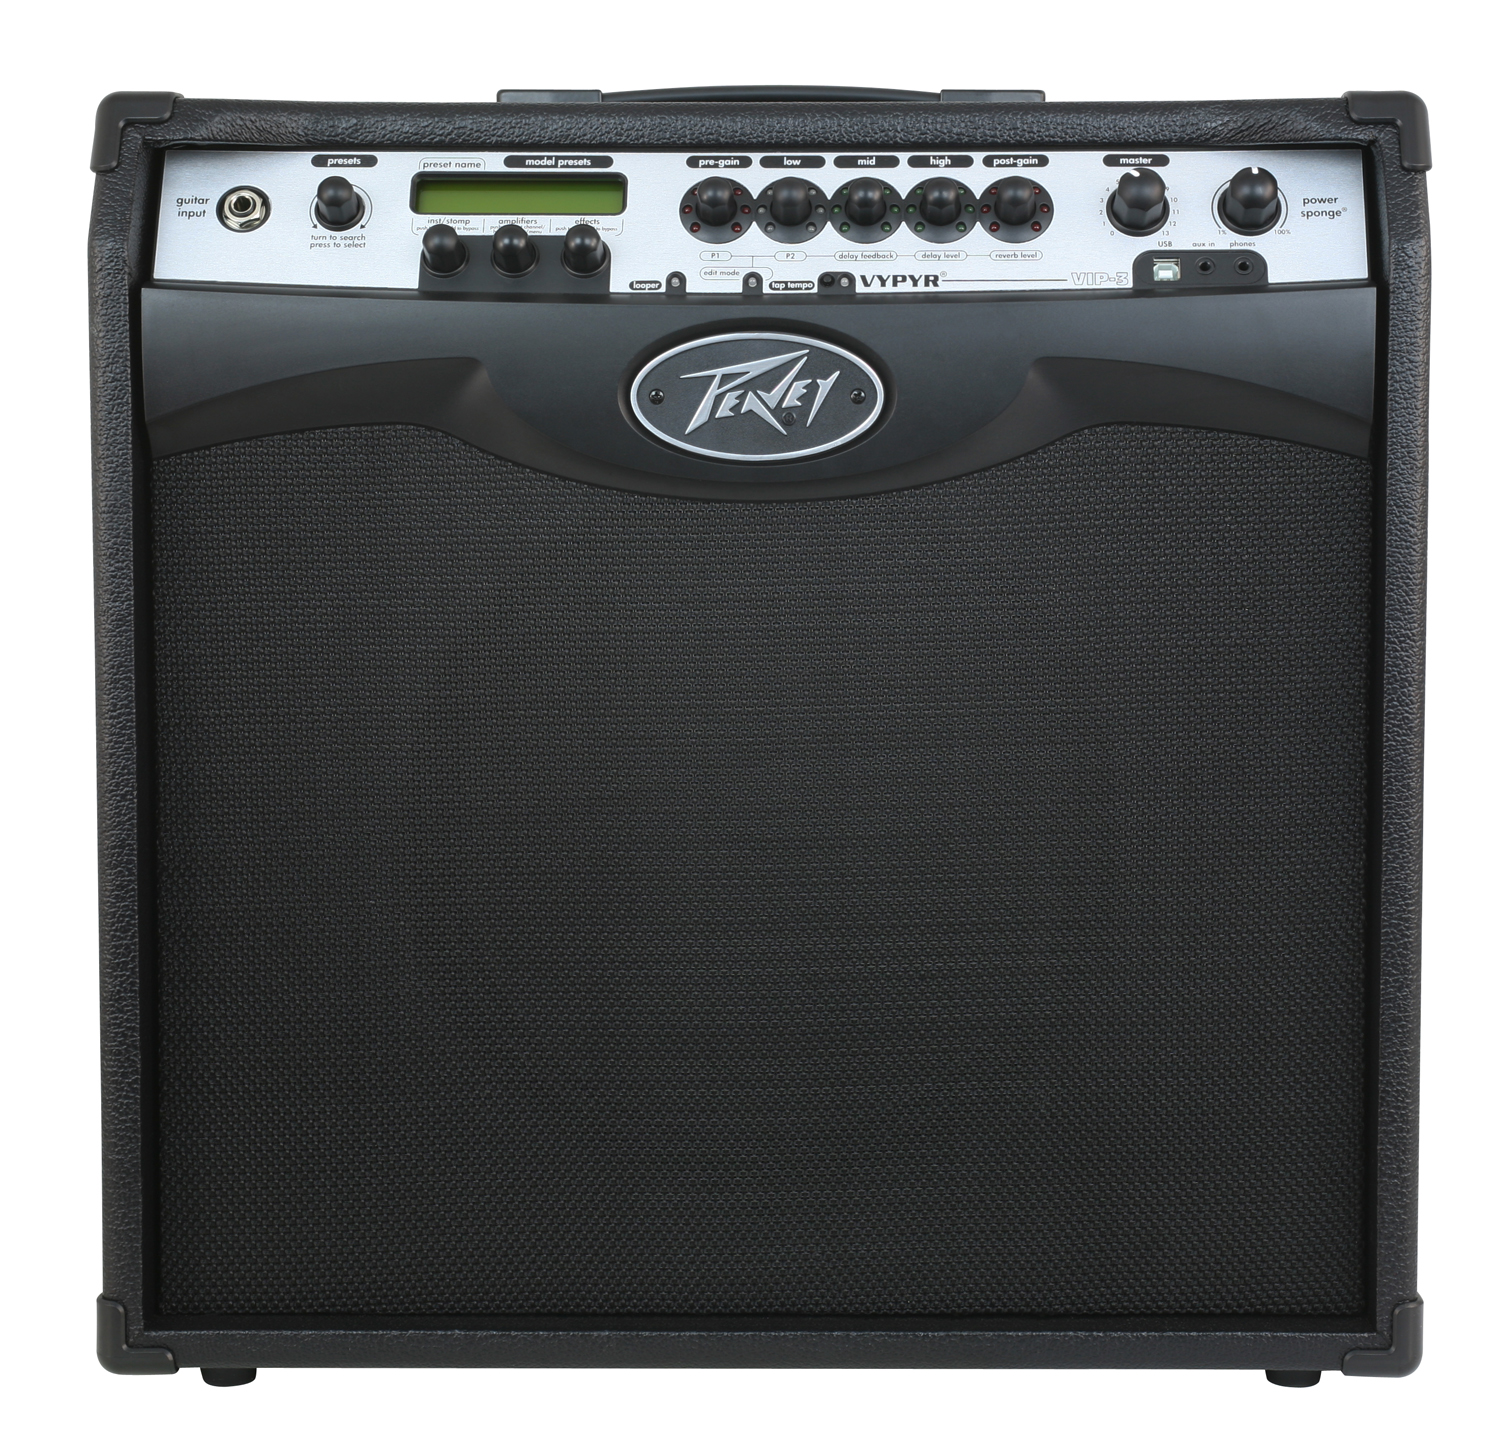 flame studio one amp fits all the peavey vypyr vip series. Black Bedroom Furniture Sets. Home Design Ideas